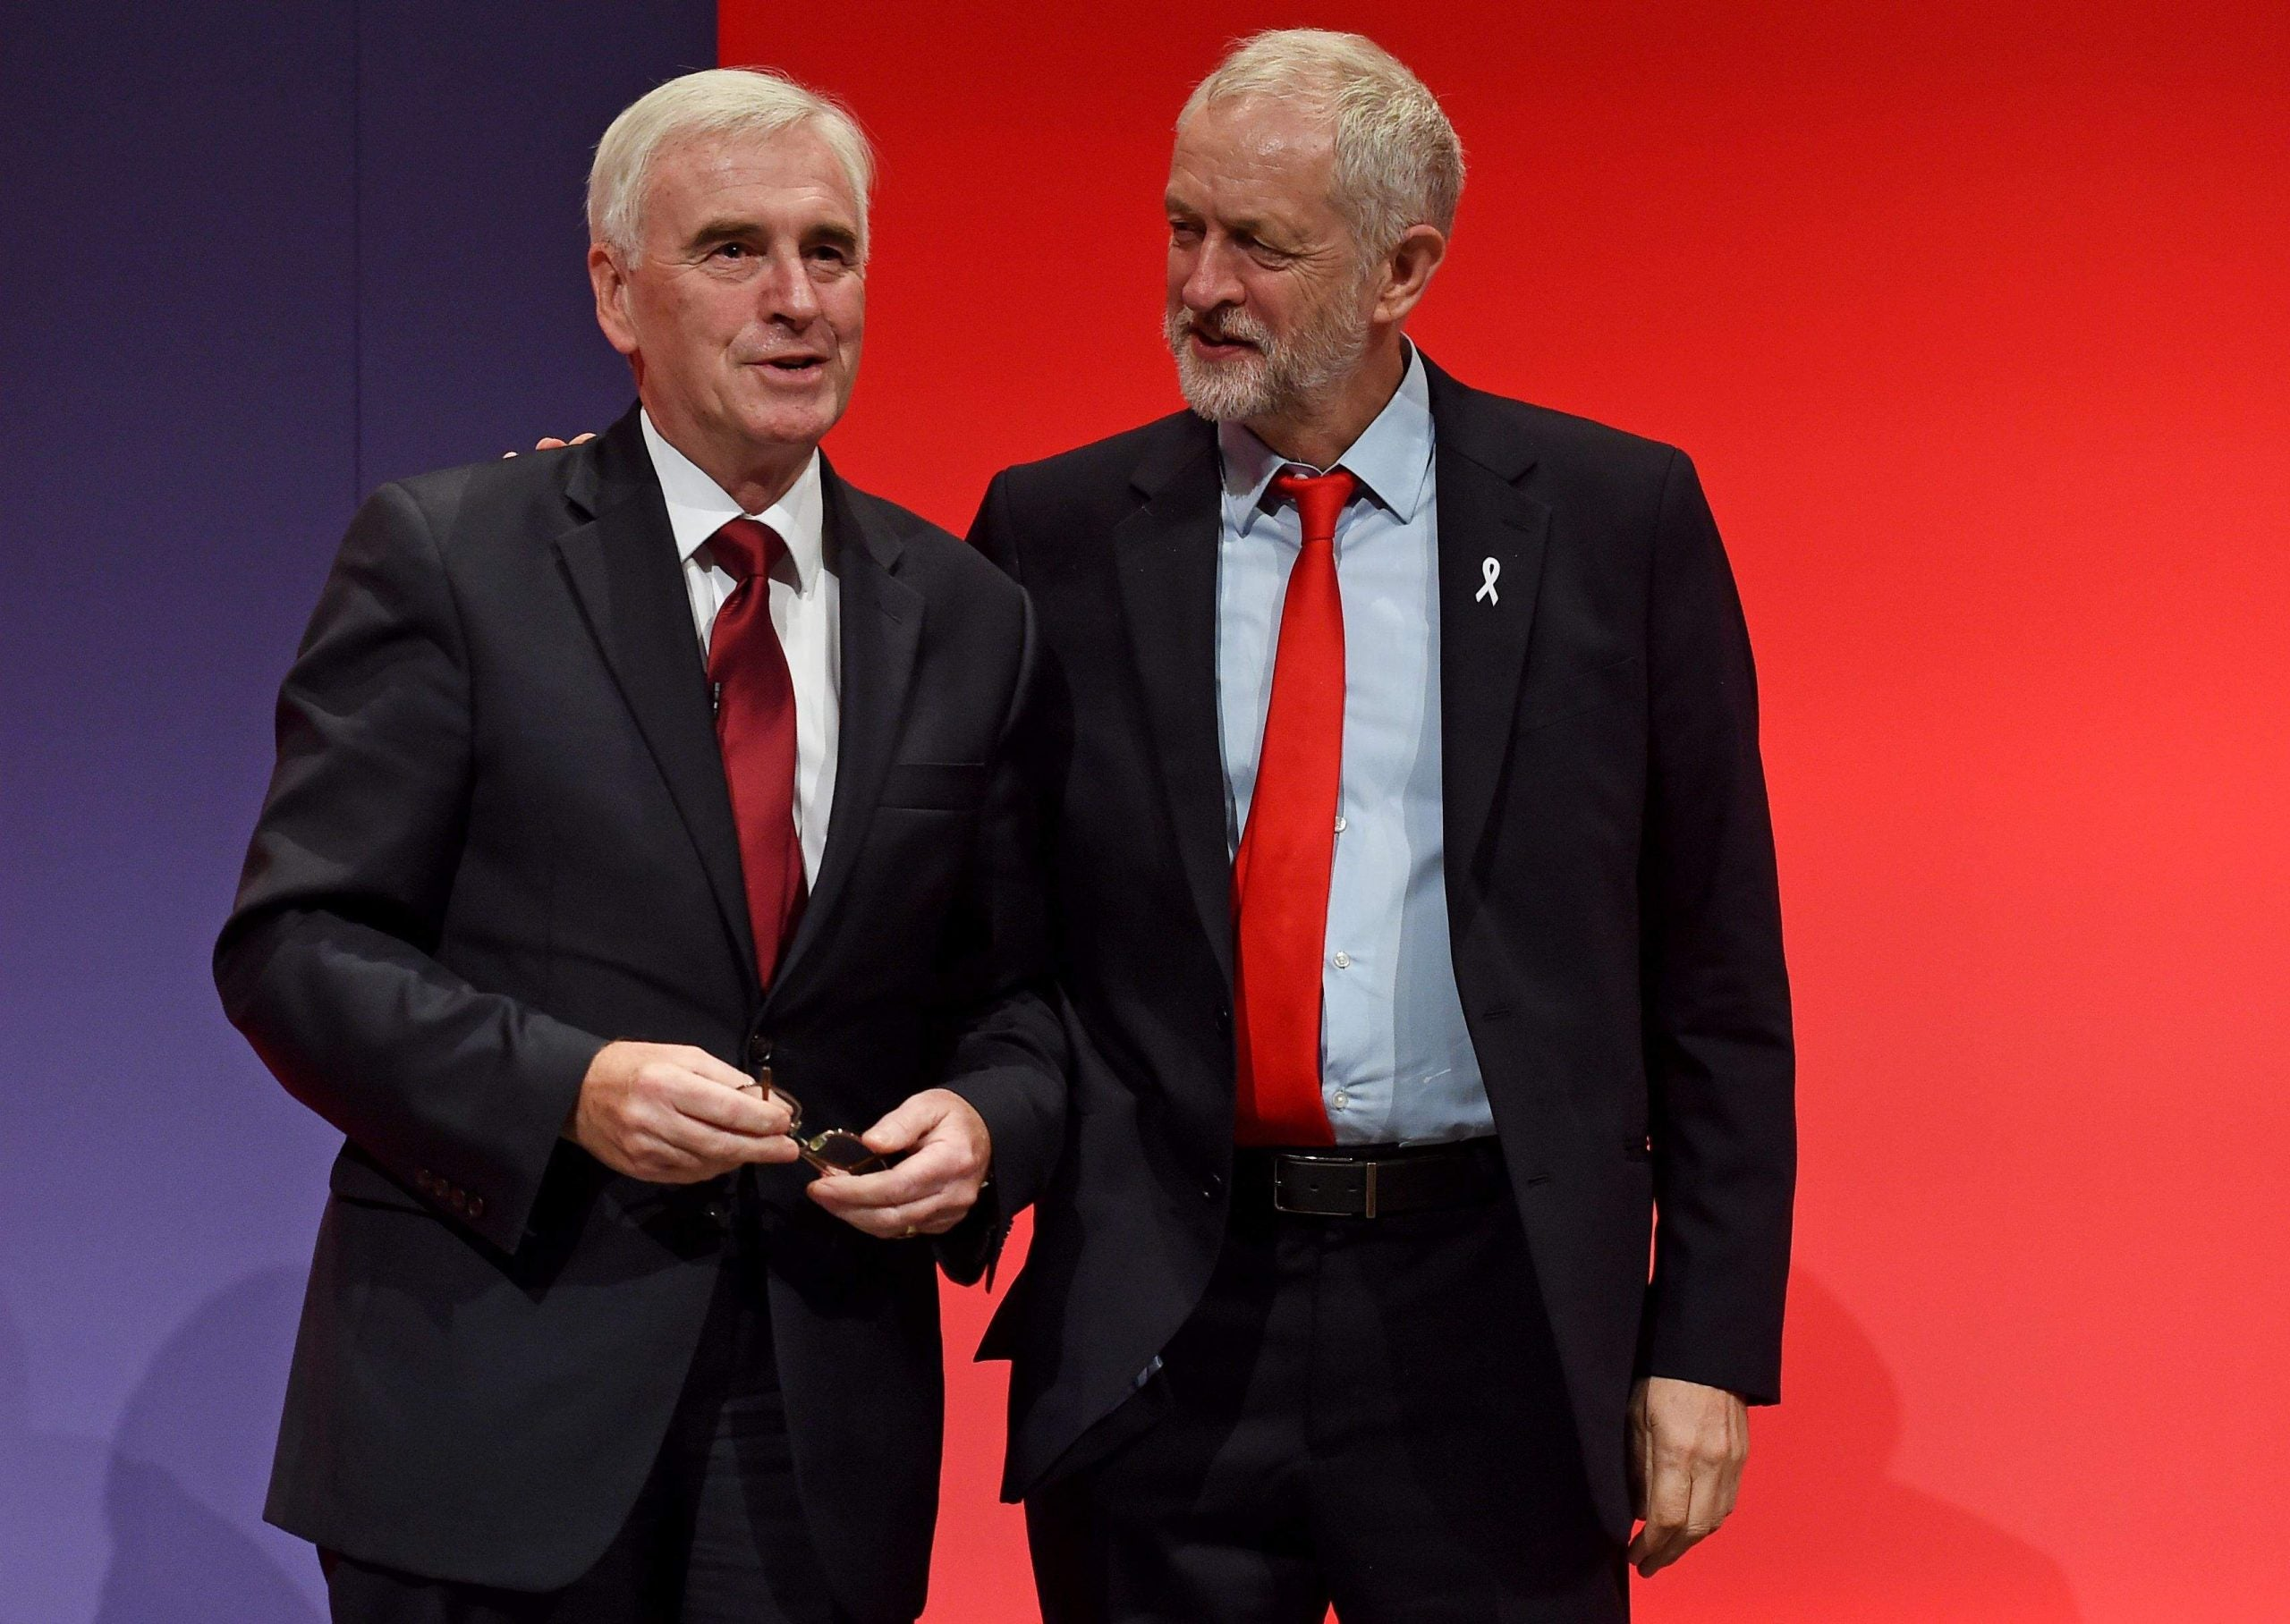 Labour has shown what unity can achieve